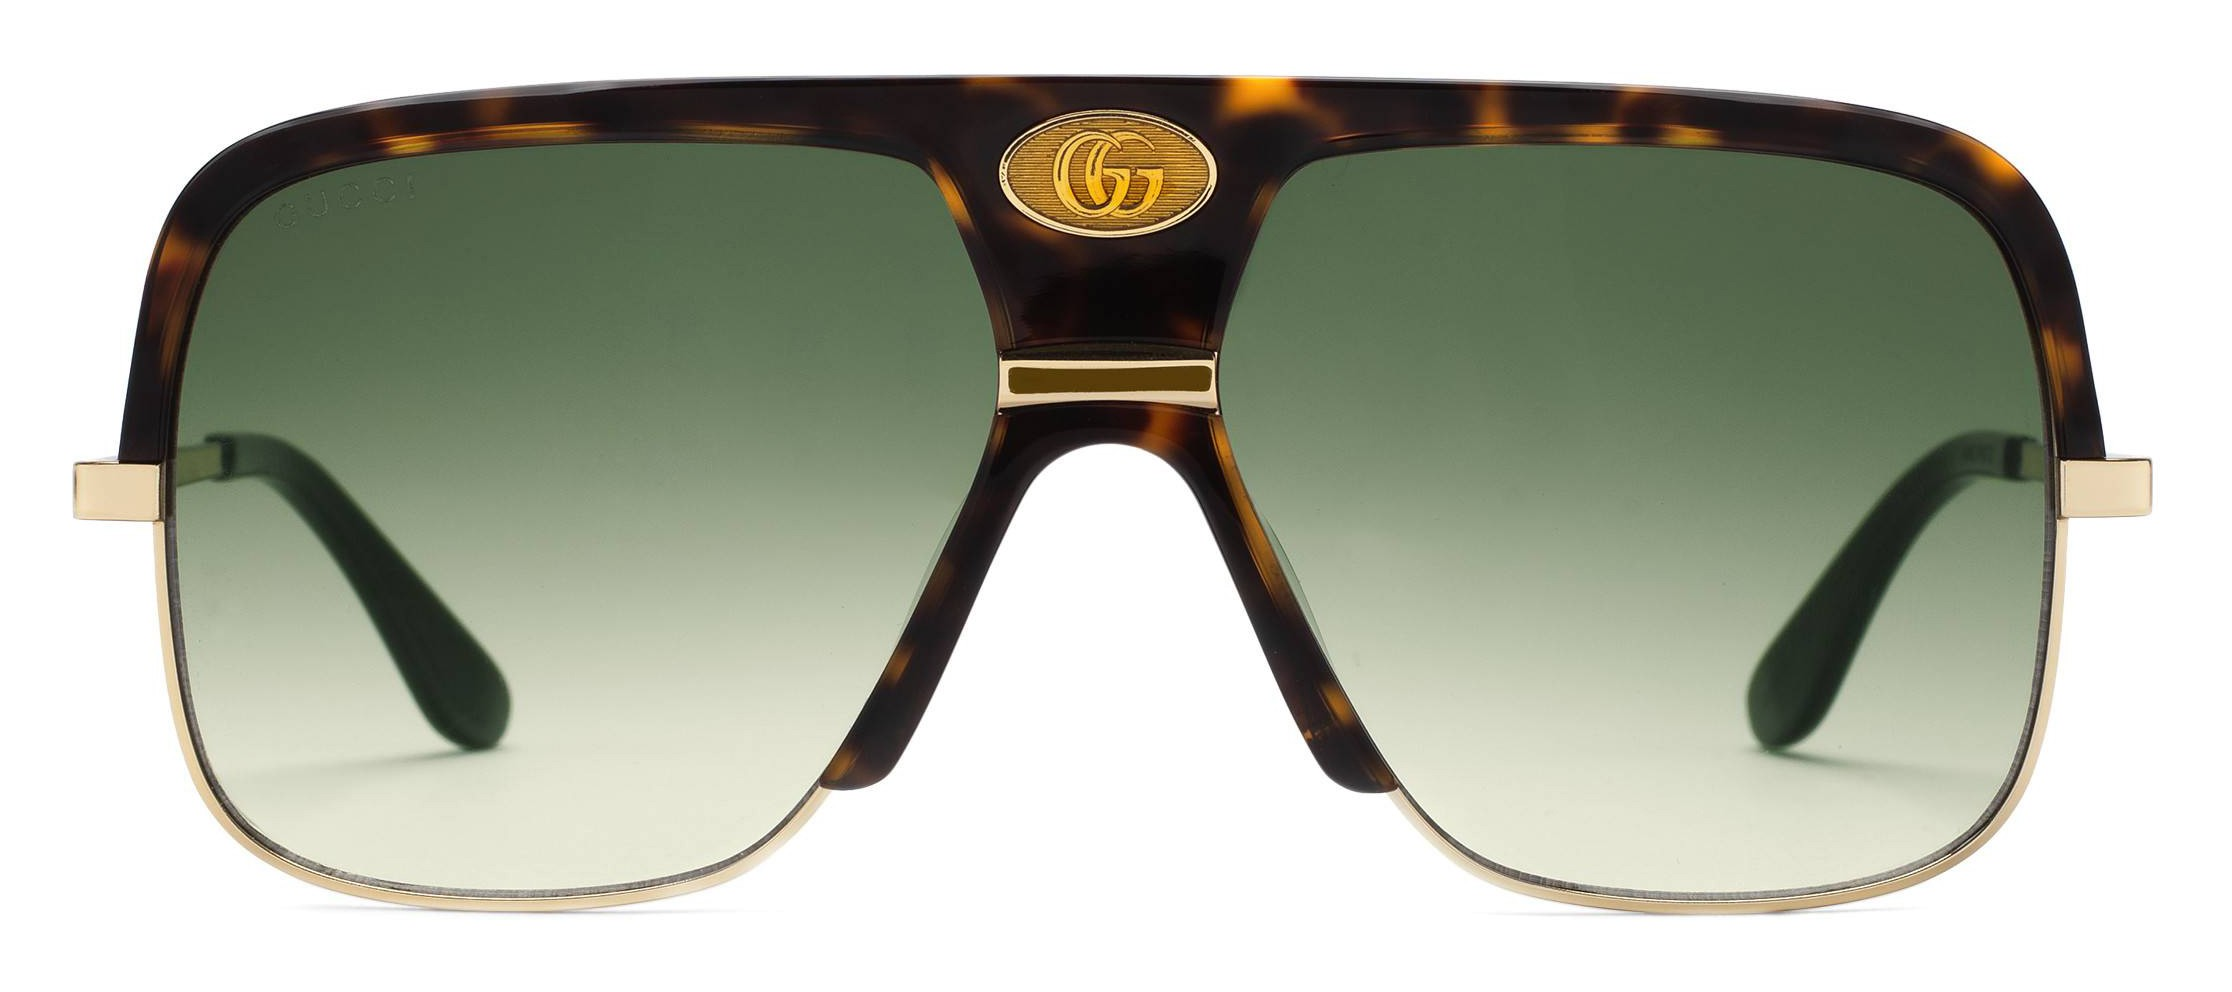 d40e53fb437 Gucci - Navigator Sunglasses with Double G - Dark Turtle Acetate and Gold  Metal - Gucci Eyewear